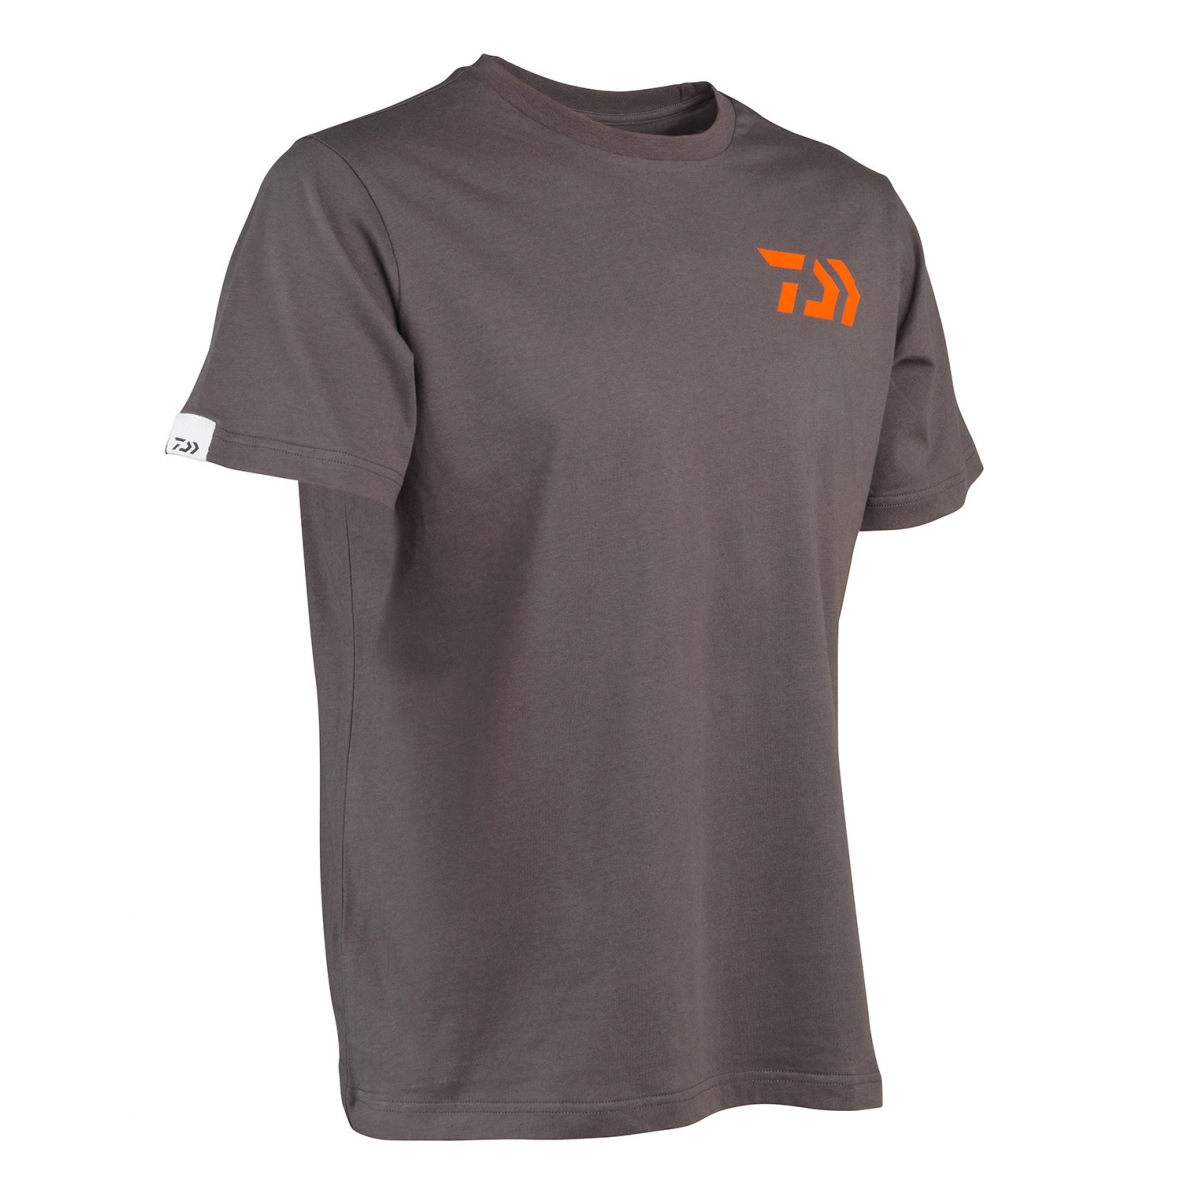 T-shirt DAIWA - gris et orange